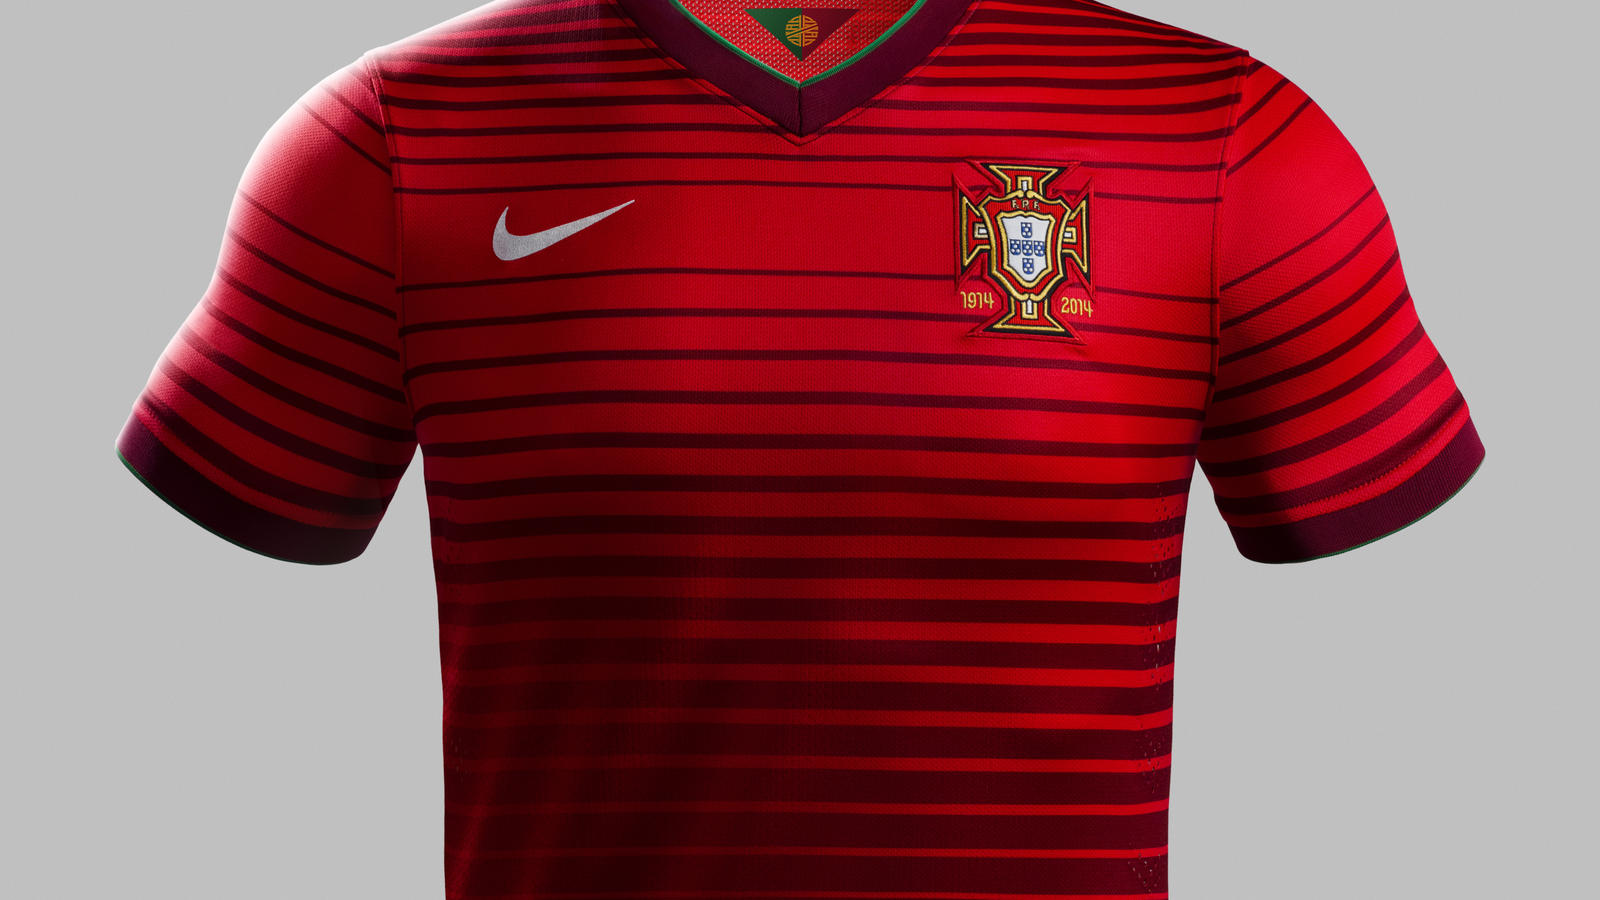 New Portugal home shirt